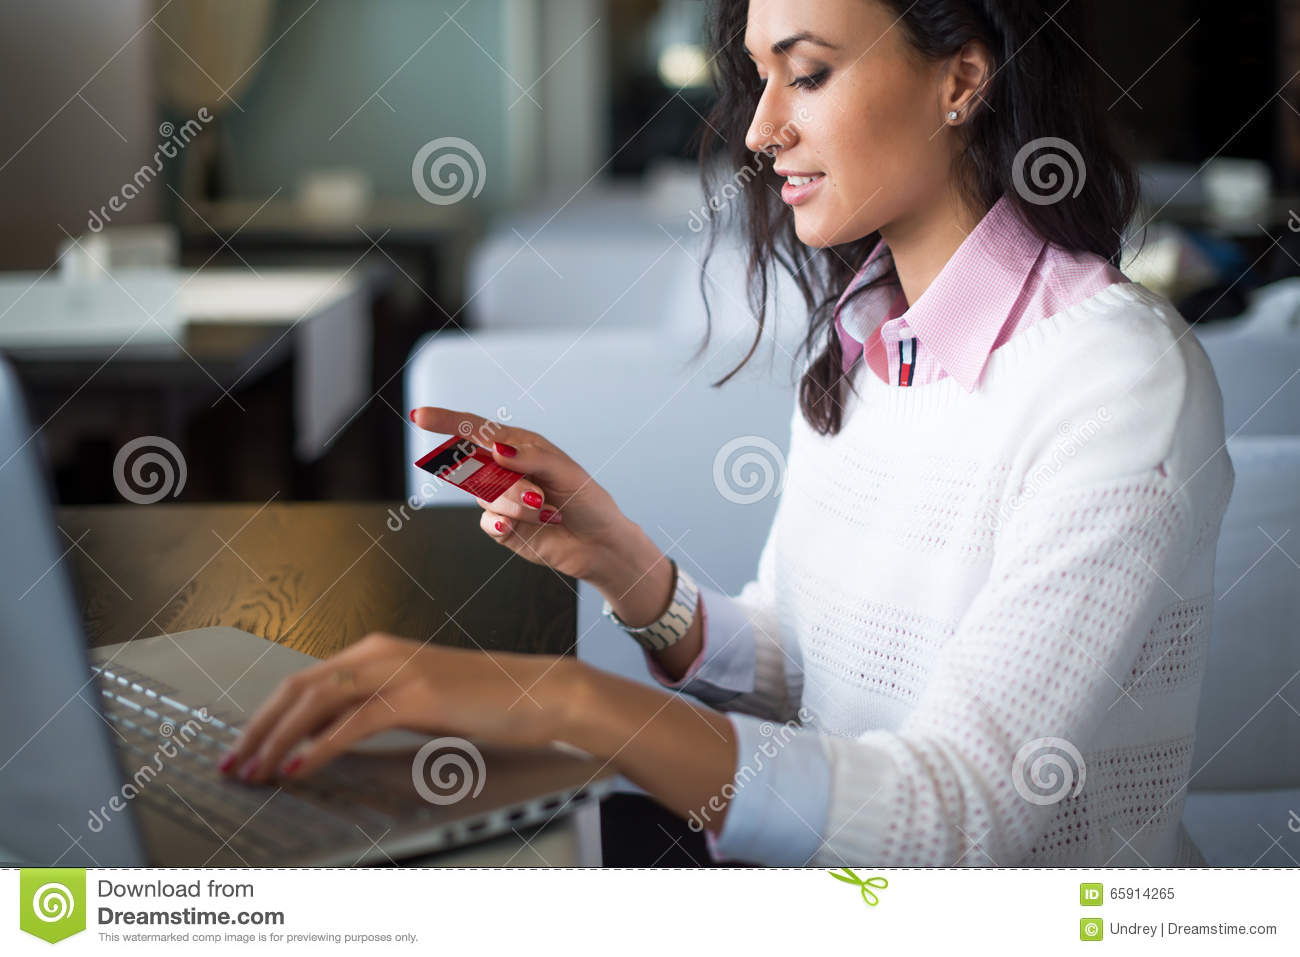 Woman doing online shopping at cafe, holding credit card typing numbers on laptop computer side view